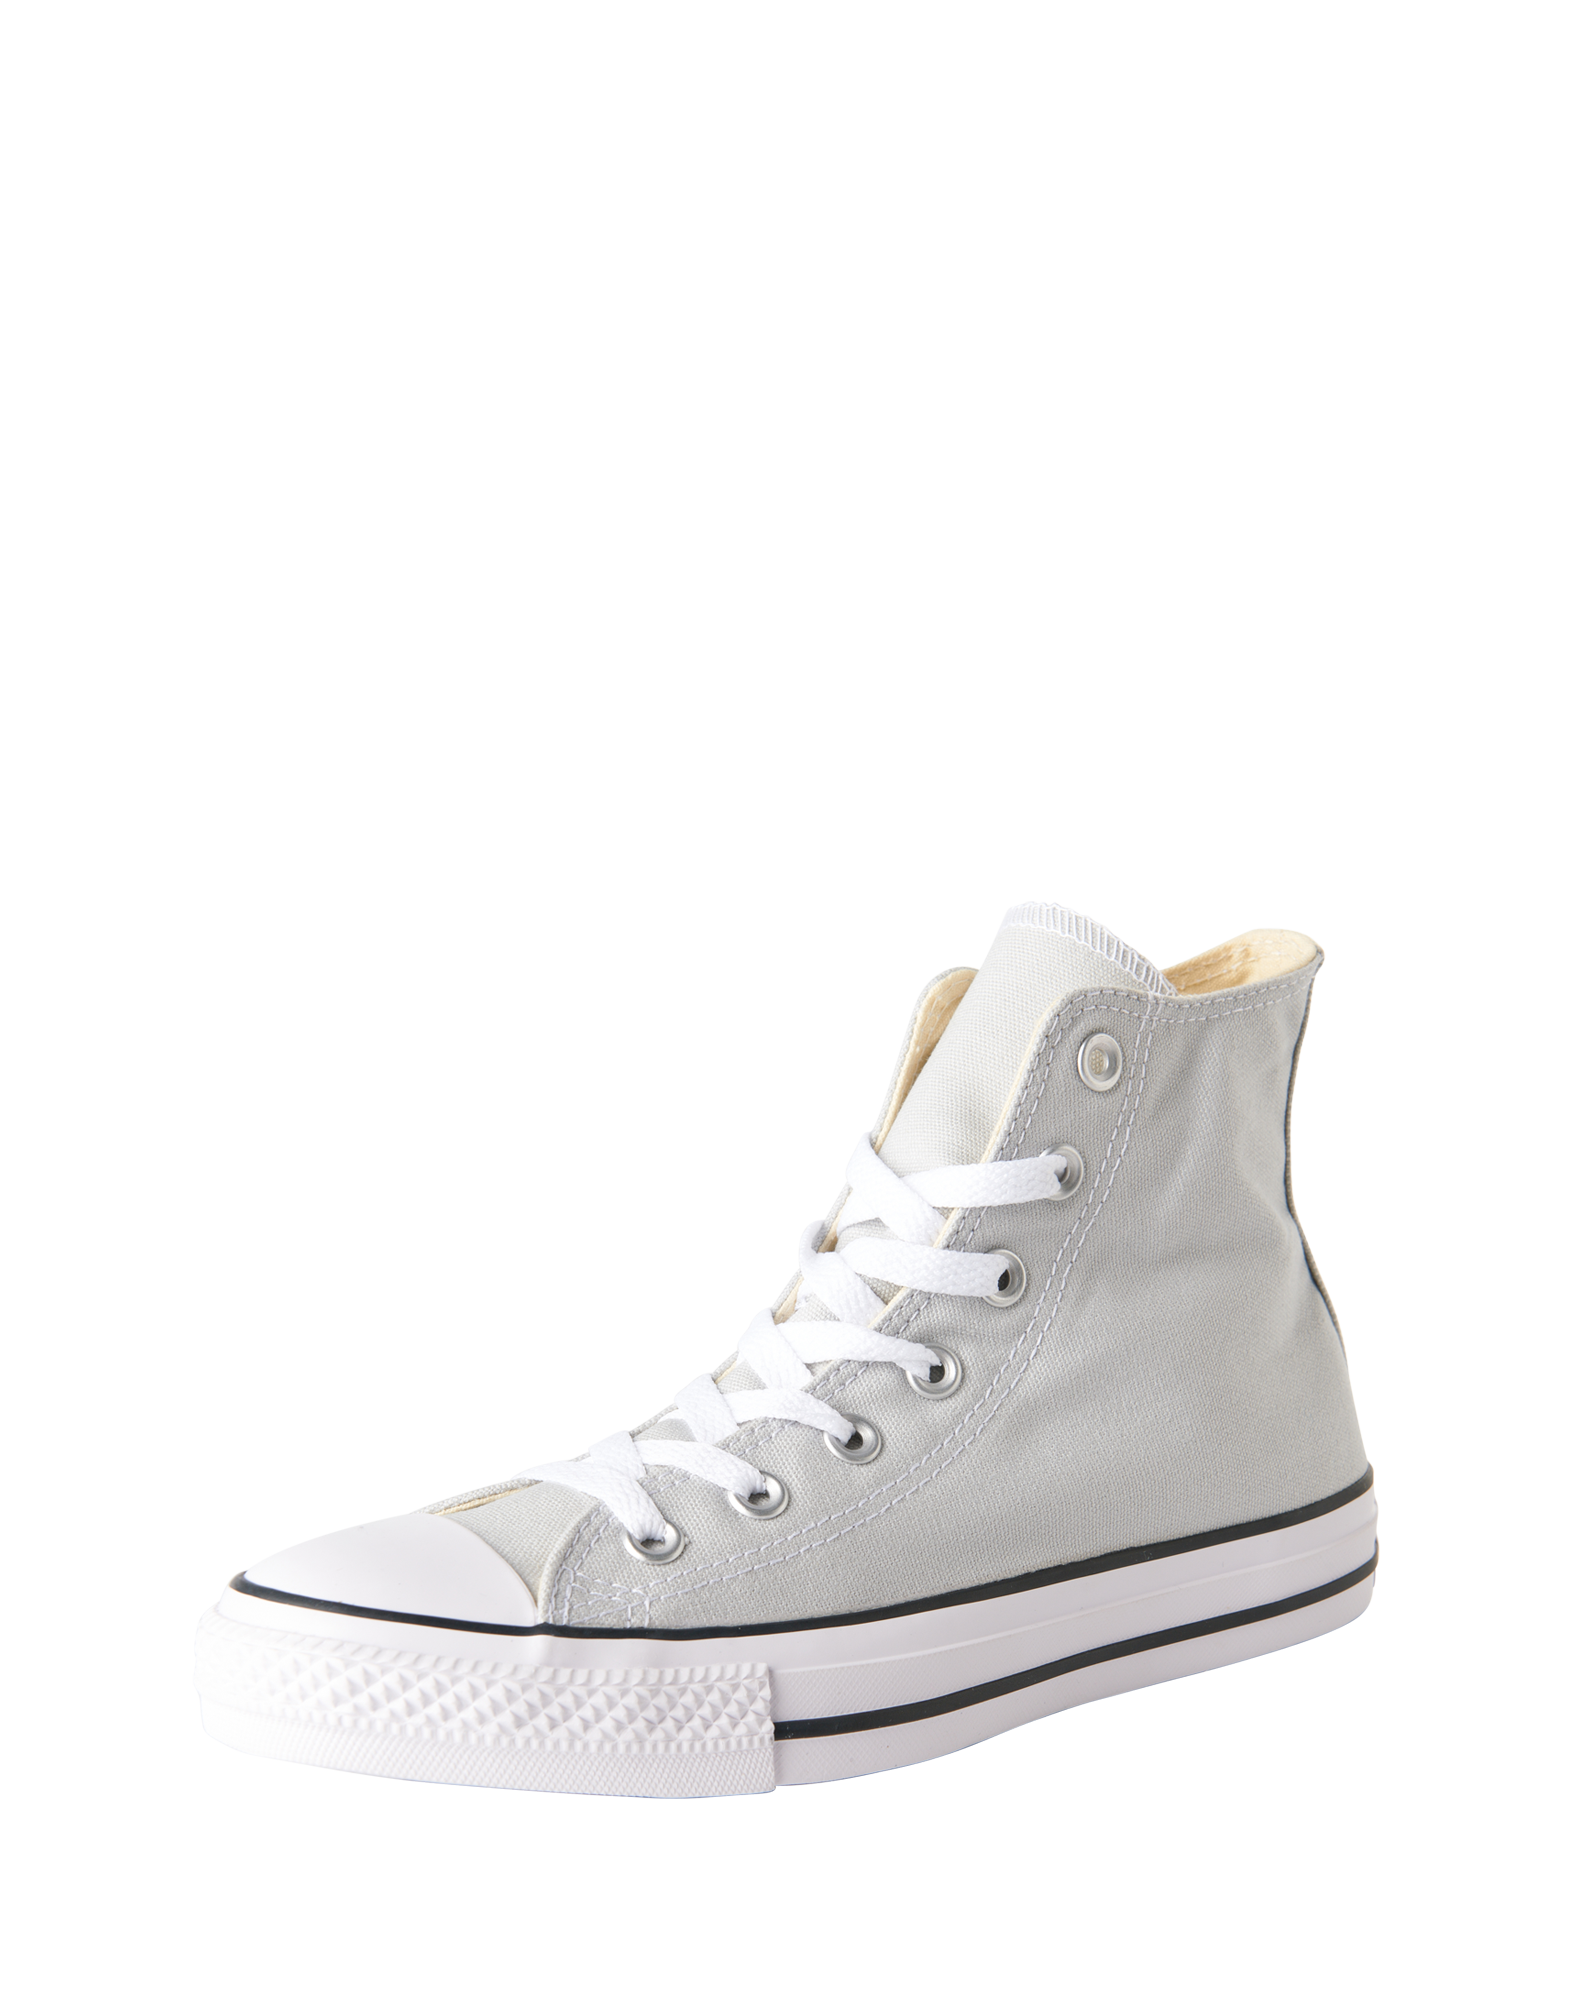 Pin von ABOUT YOU auf ABOUT YOU ❤ Sneaker | Pinterest